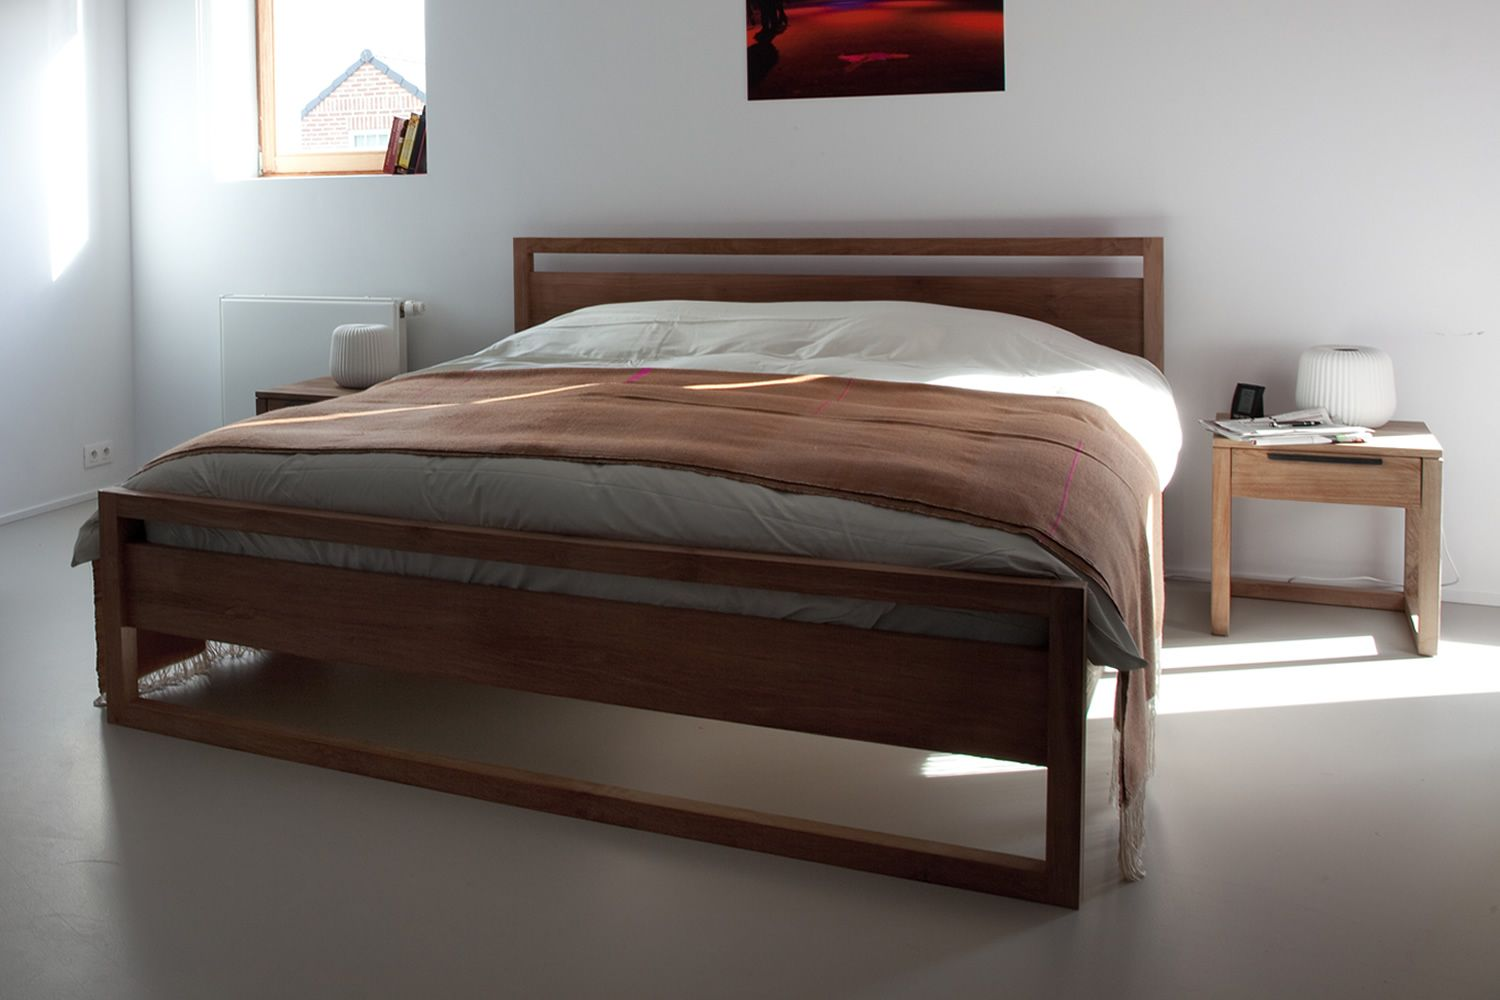 Light frame cama matrimonial ethnicraft con estructura de for Ancho cama matrimonial